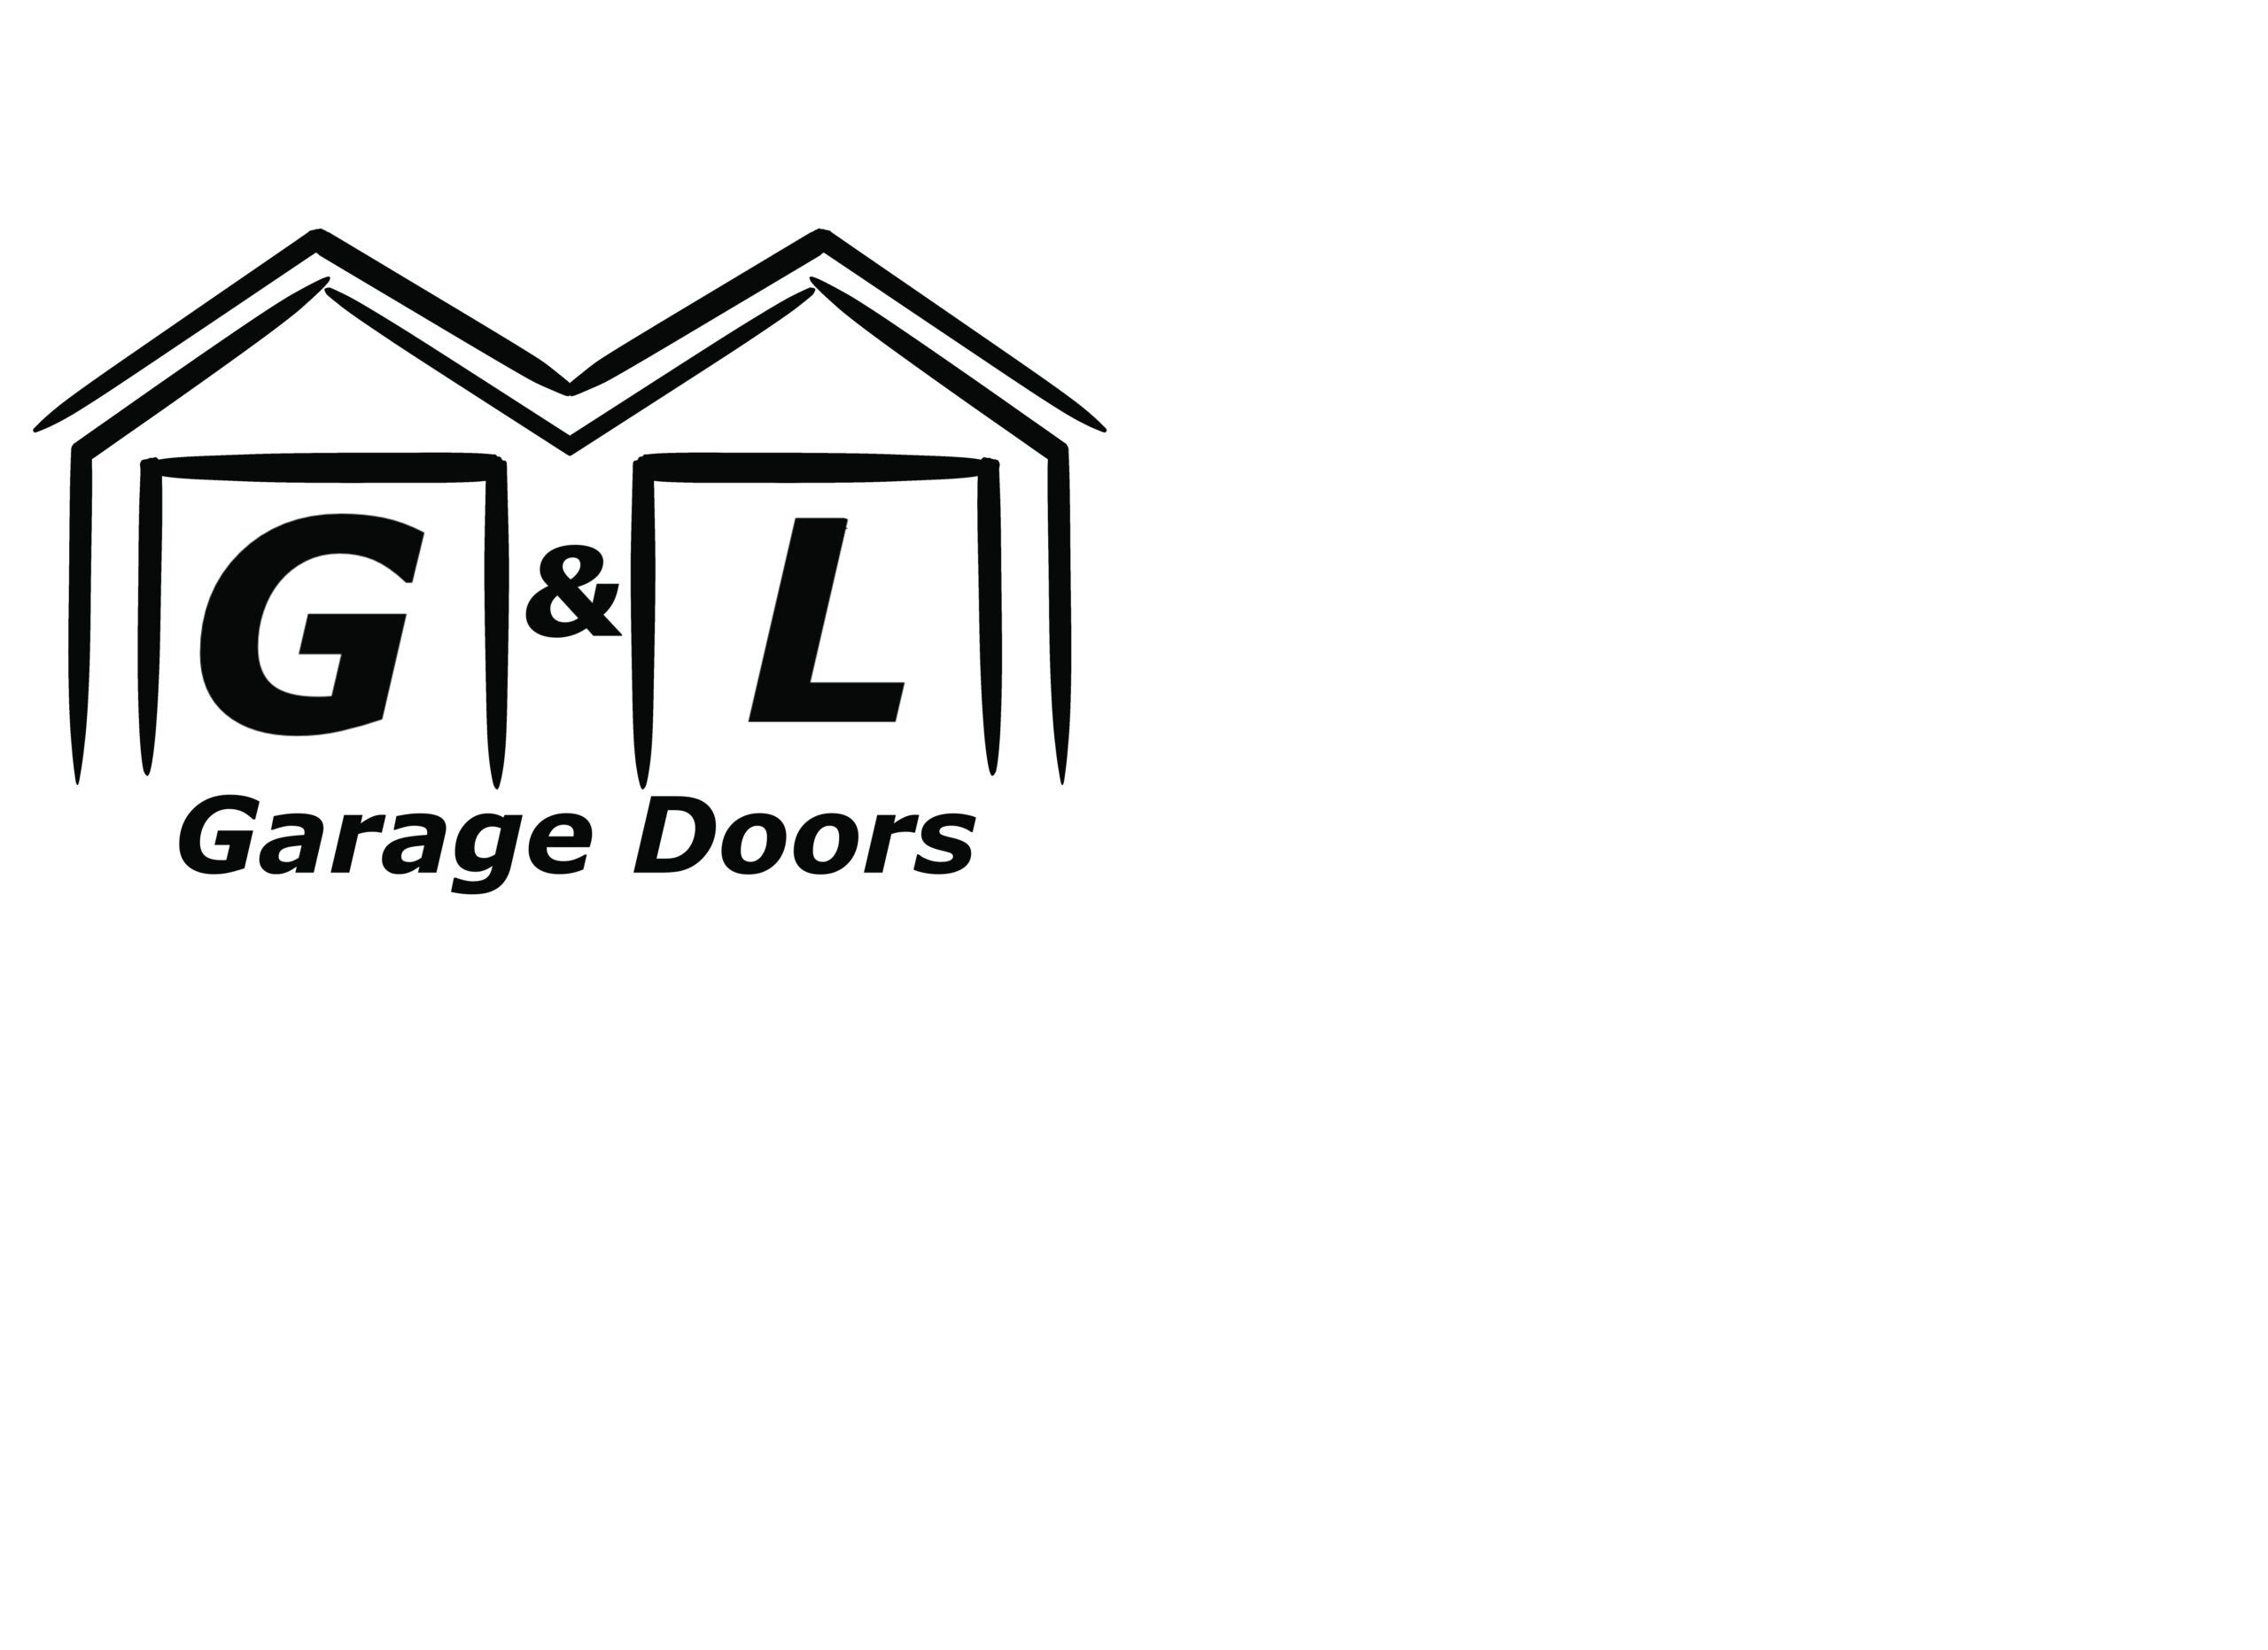 G And L Garage Doors